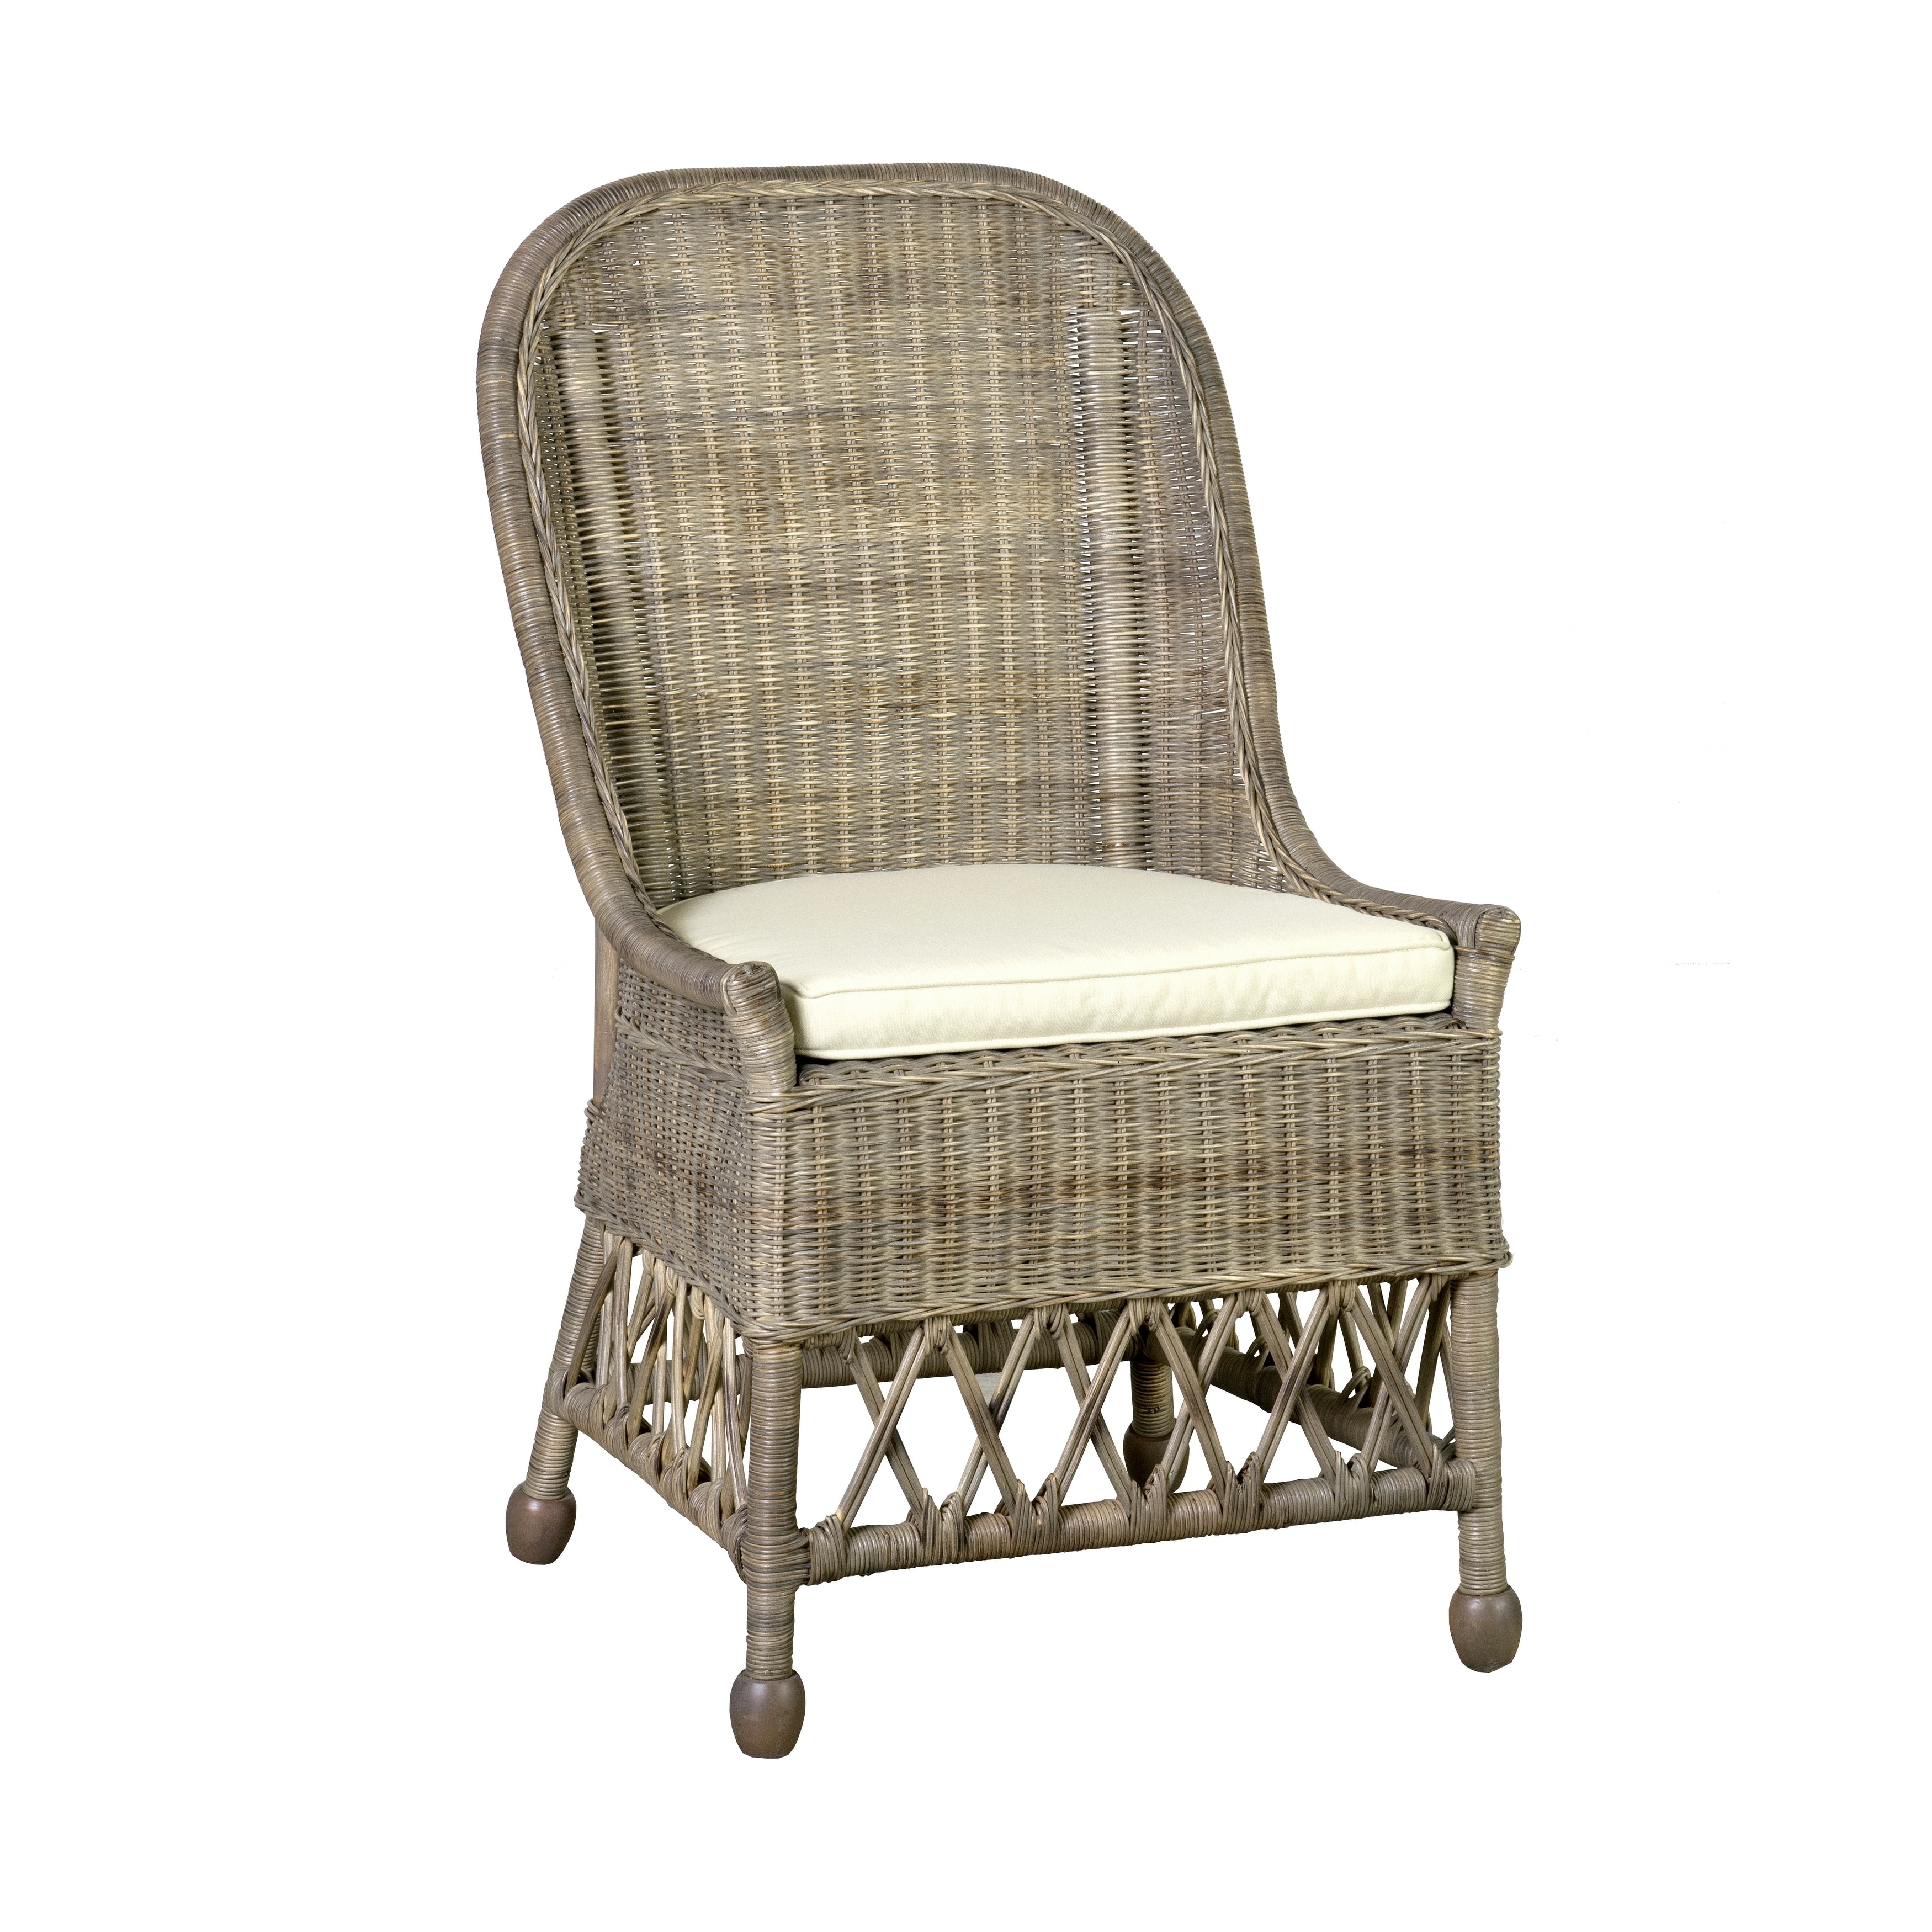 Astounding East At Mains Ruth Rattan Dining Chair Bralicious Painted Fabric Chair Ideas Braliciousco